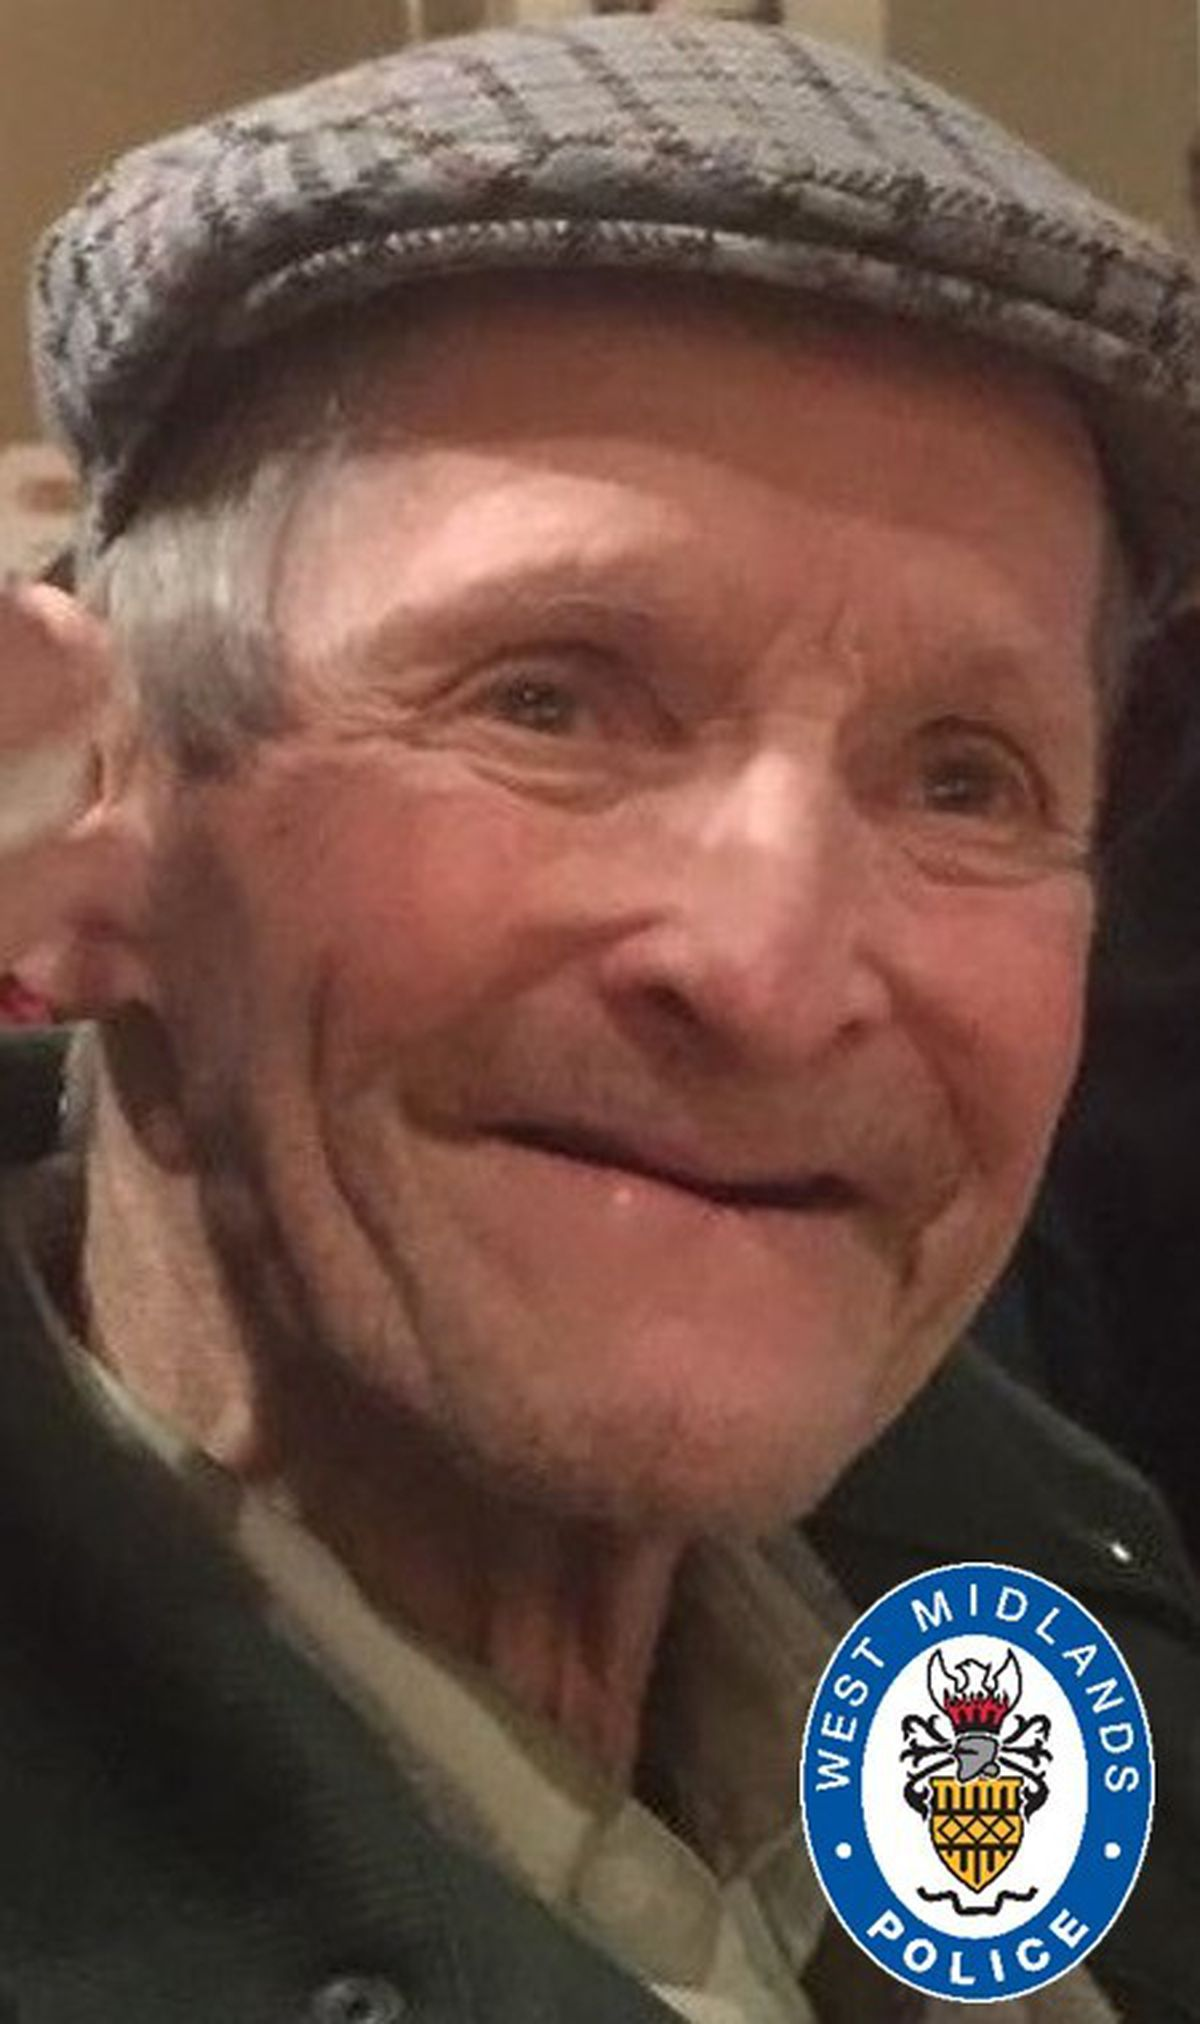 Robert Morrison died after contracting pneumonia, six days after the assault (Image by West Midlands Police)